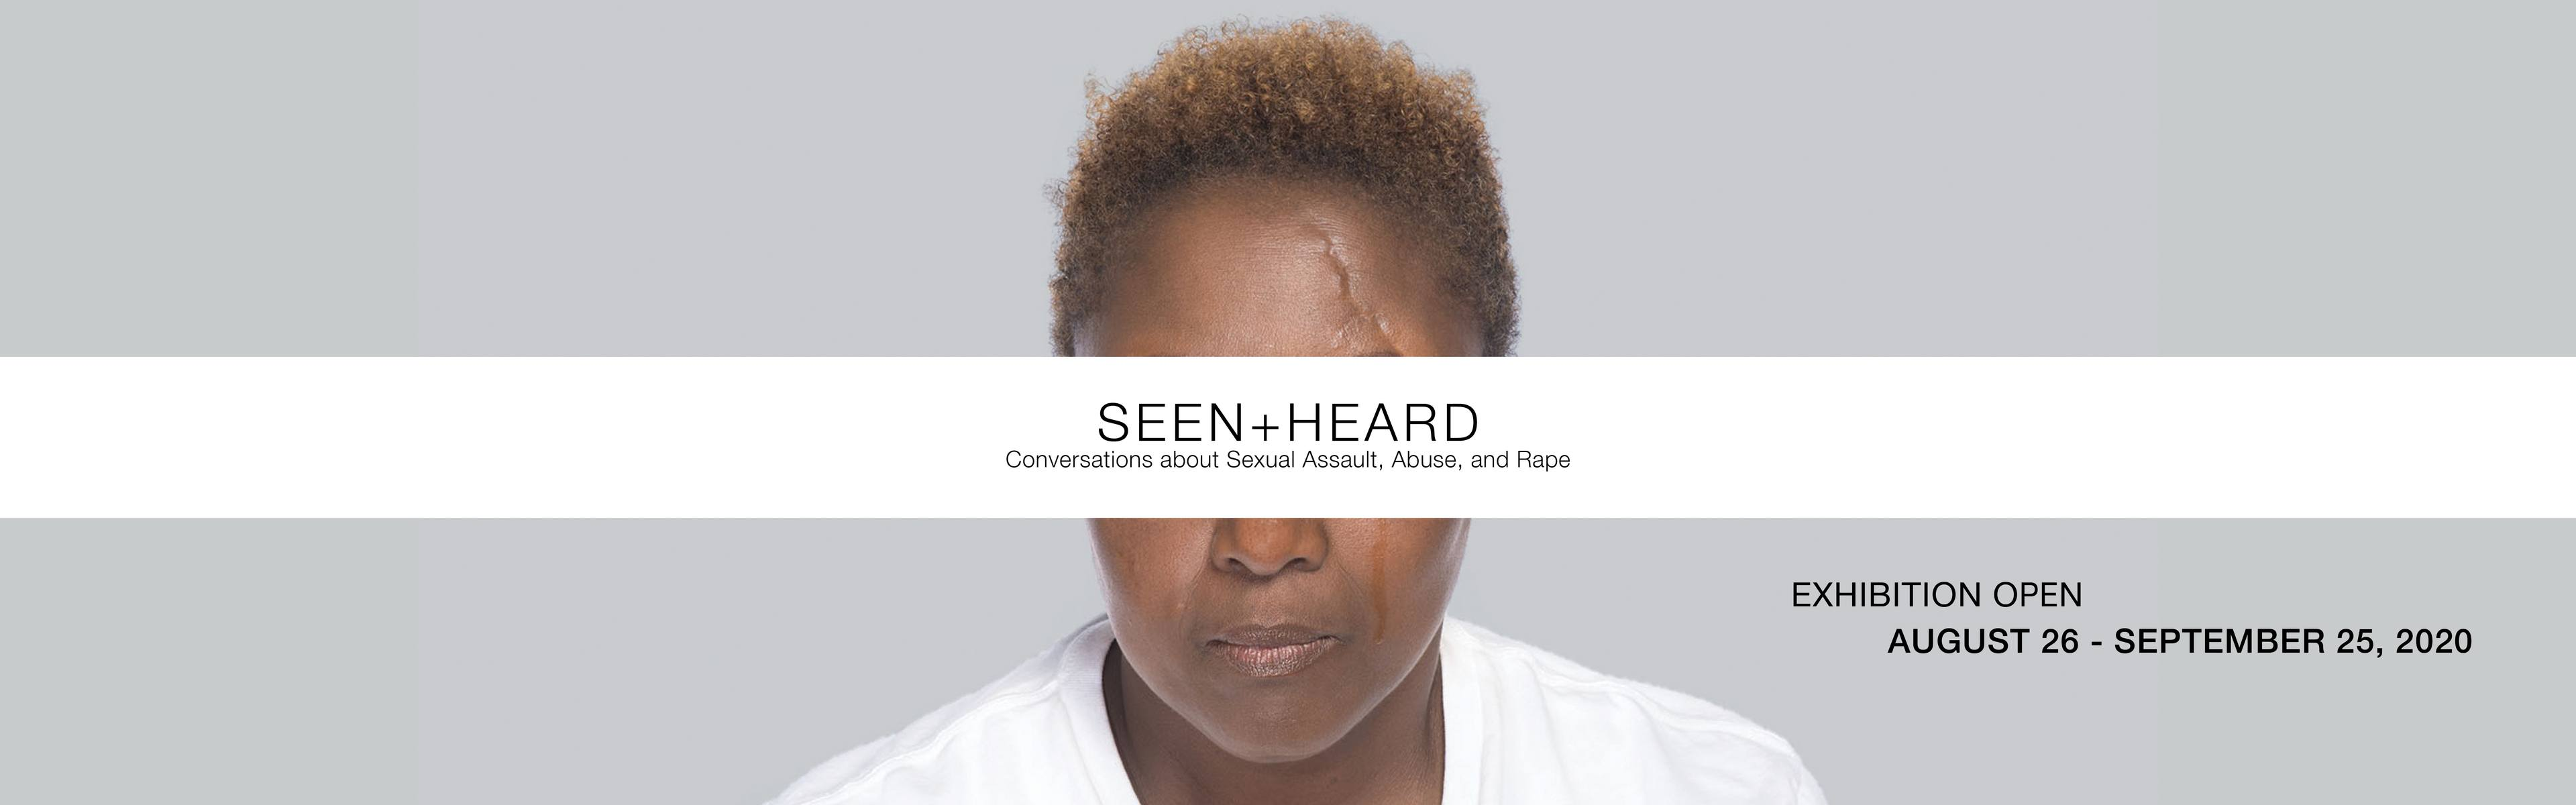 Seen+Heard-Header